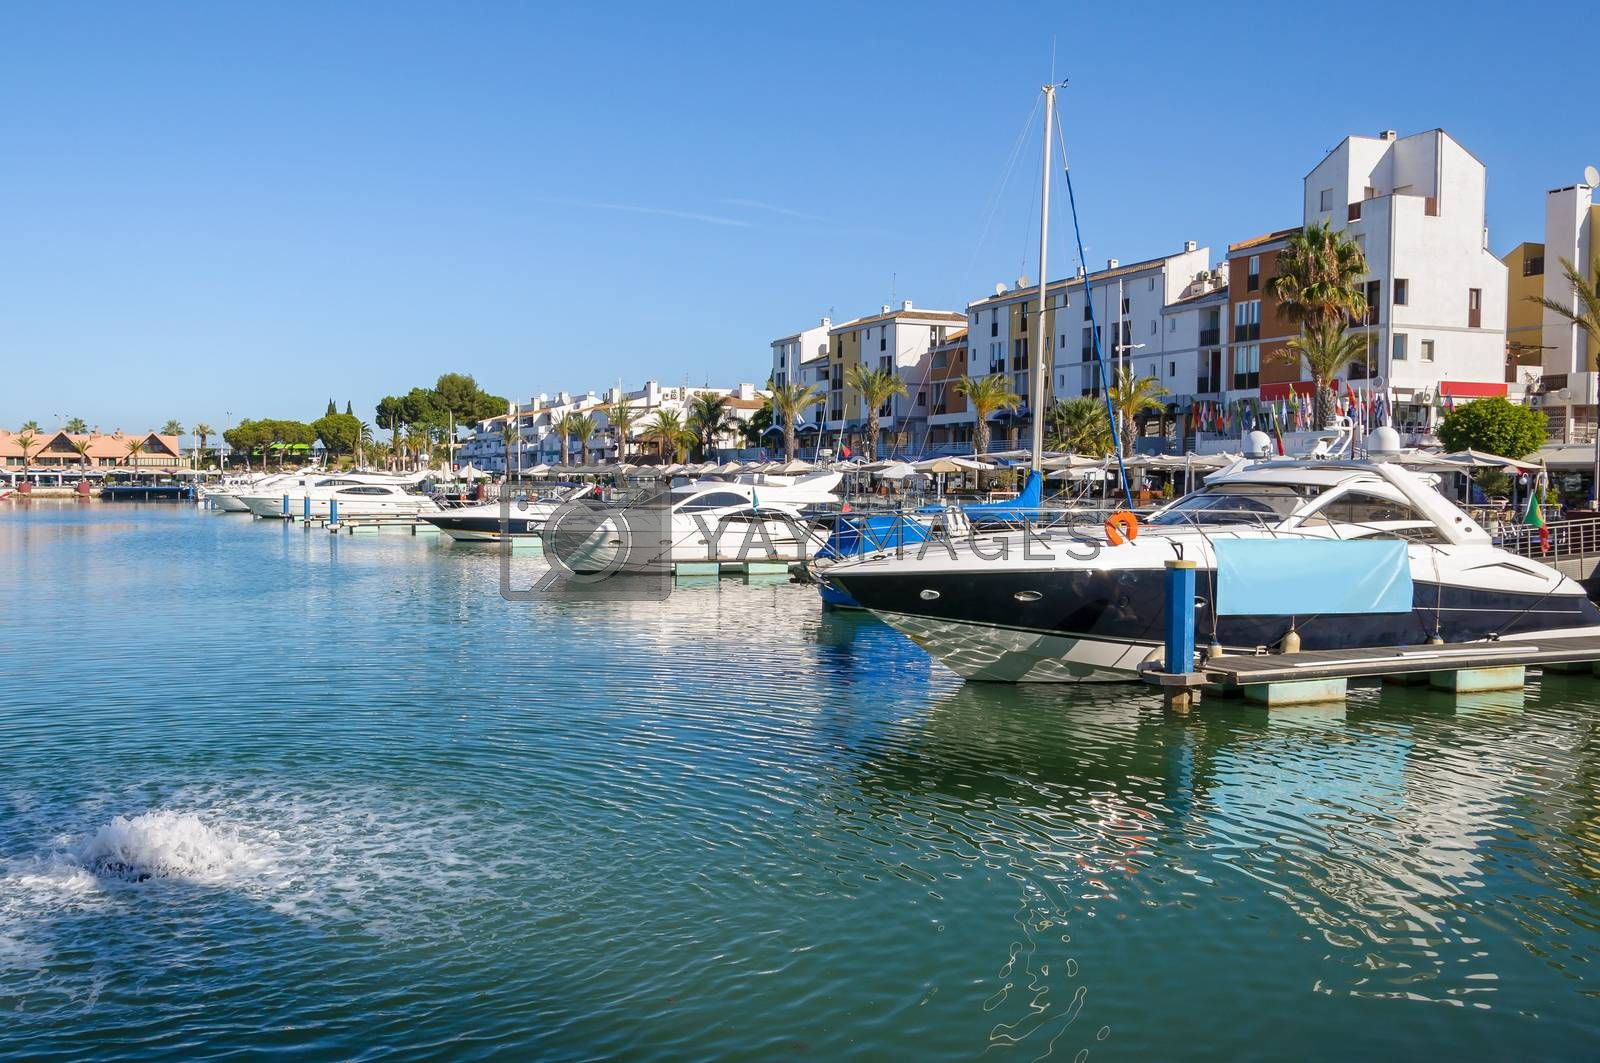 Royalty free image of Luxury yachts in the port of Vilamoura in Portugal by mkos83